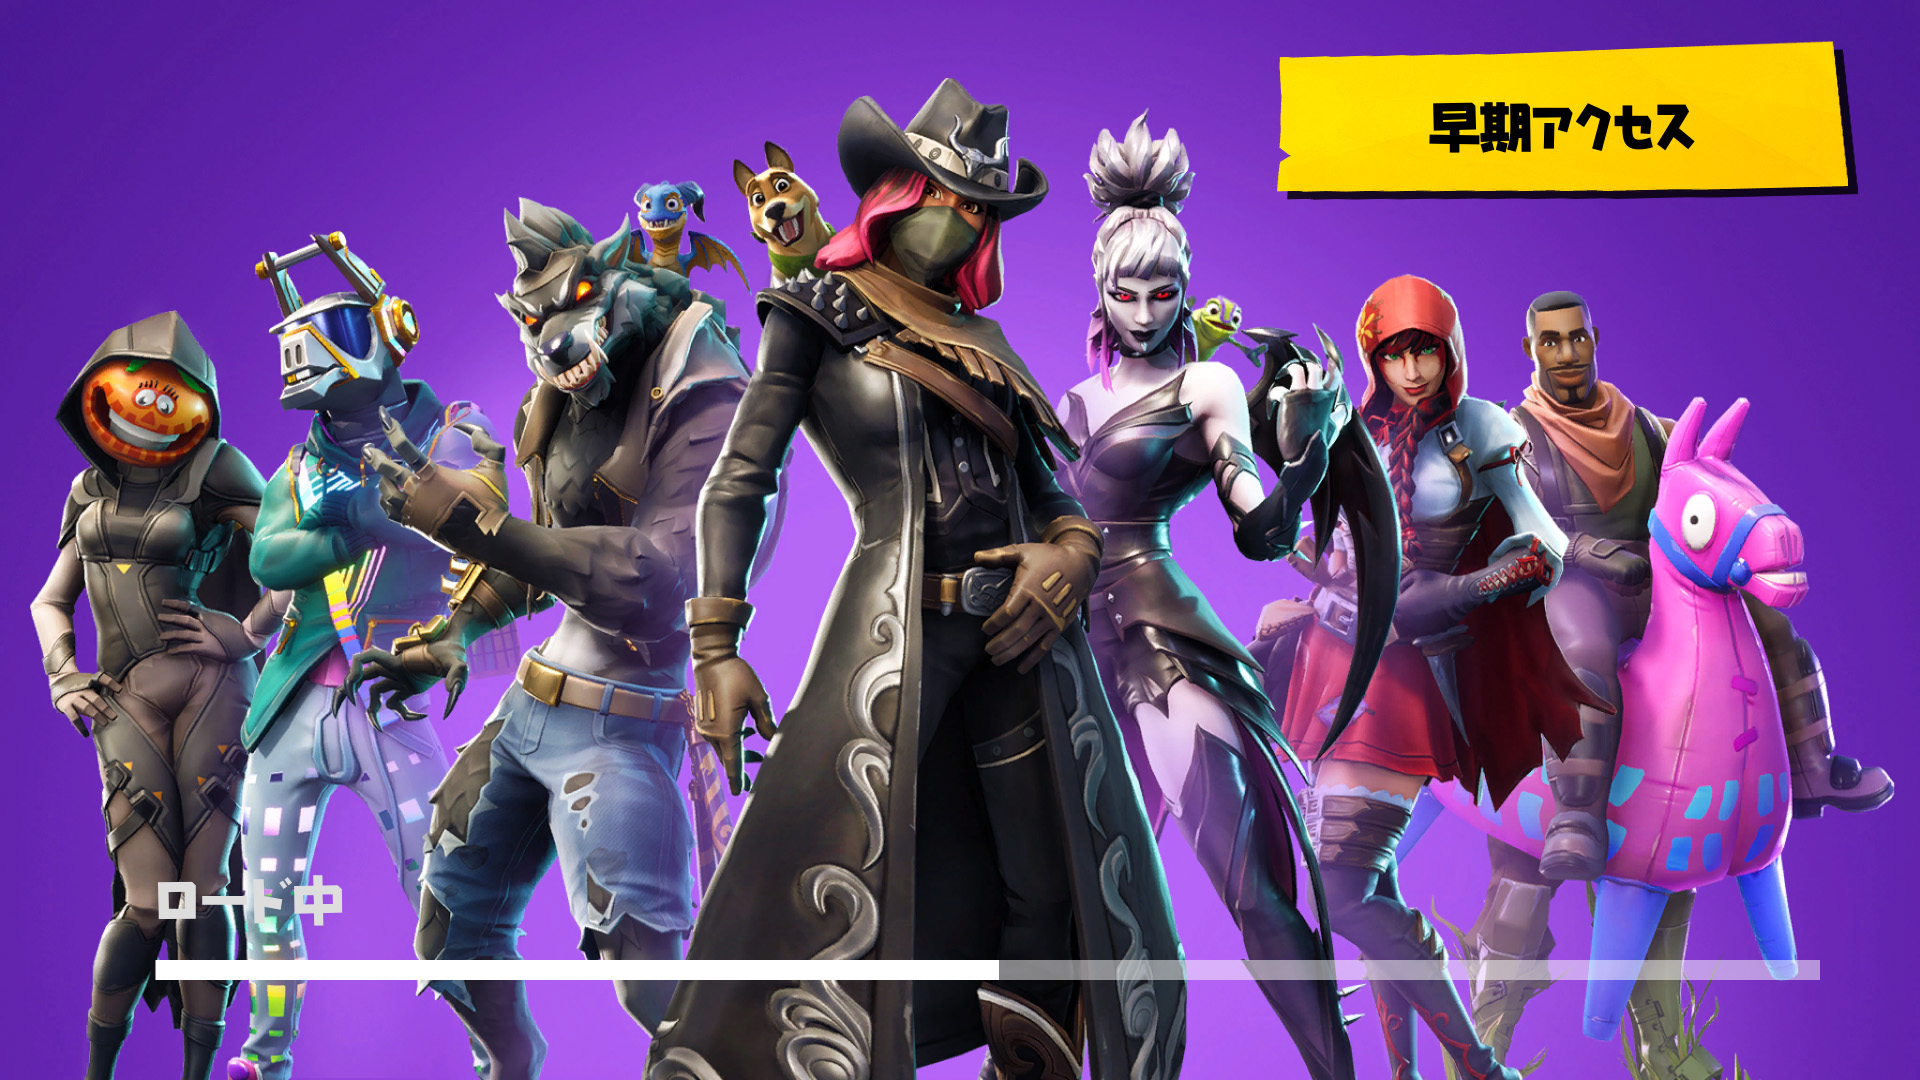 Epic Games「Fortnite」(フォートナイト)